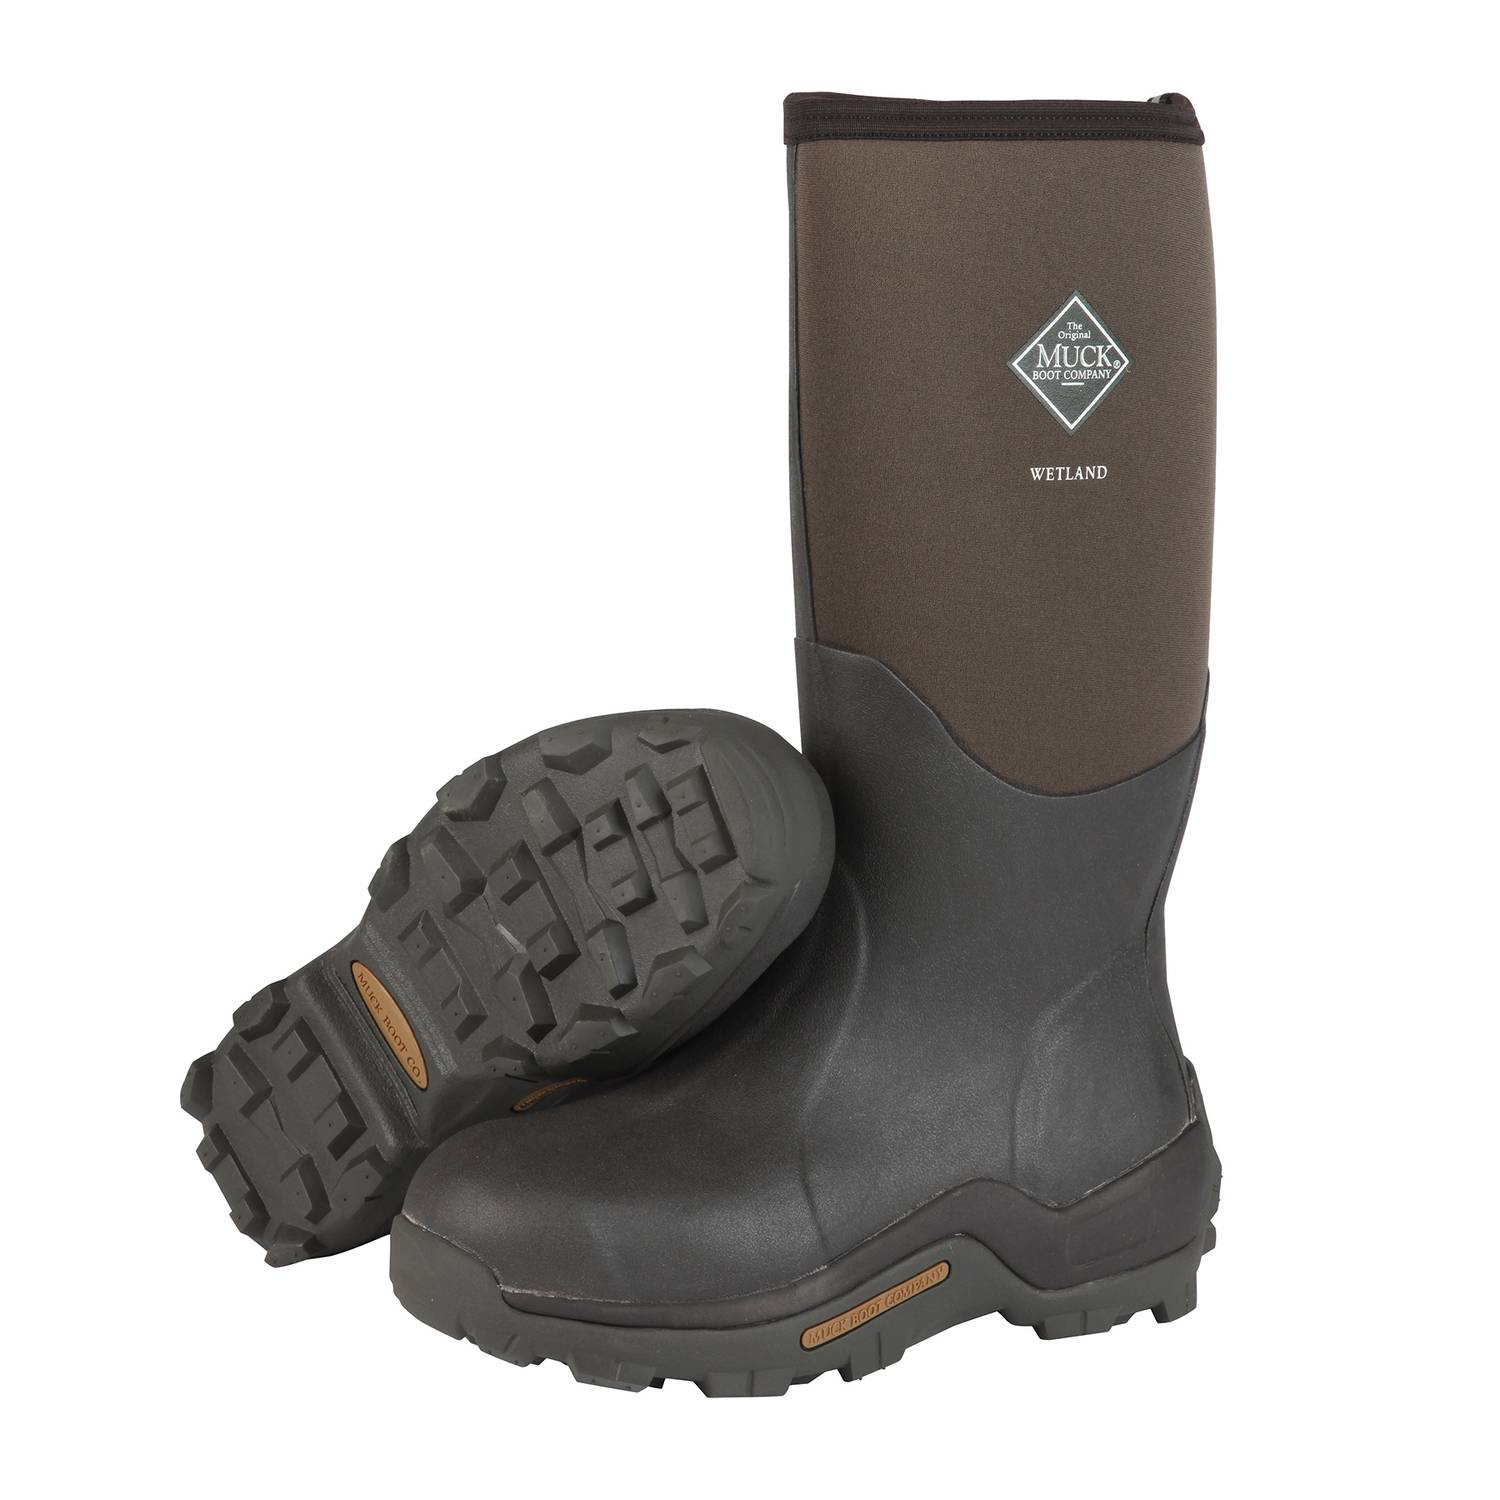 The Original Muck Boot Company Wetland Men's Boots 12 US Brown